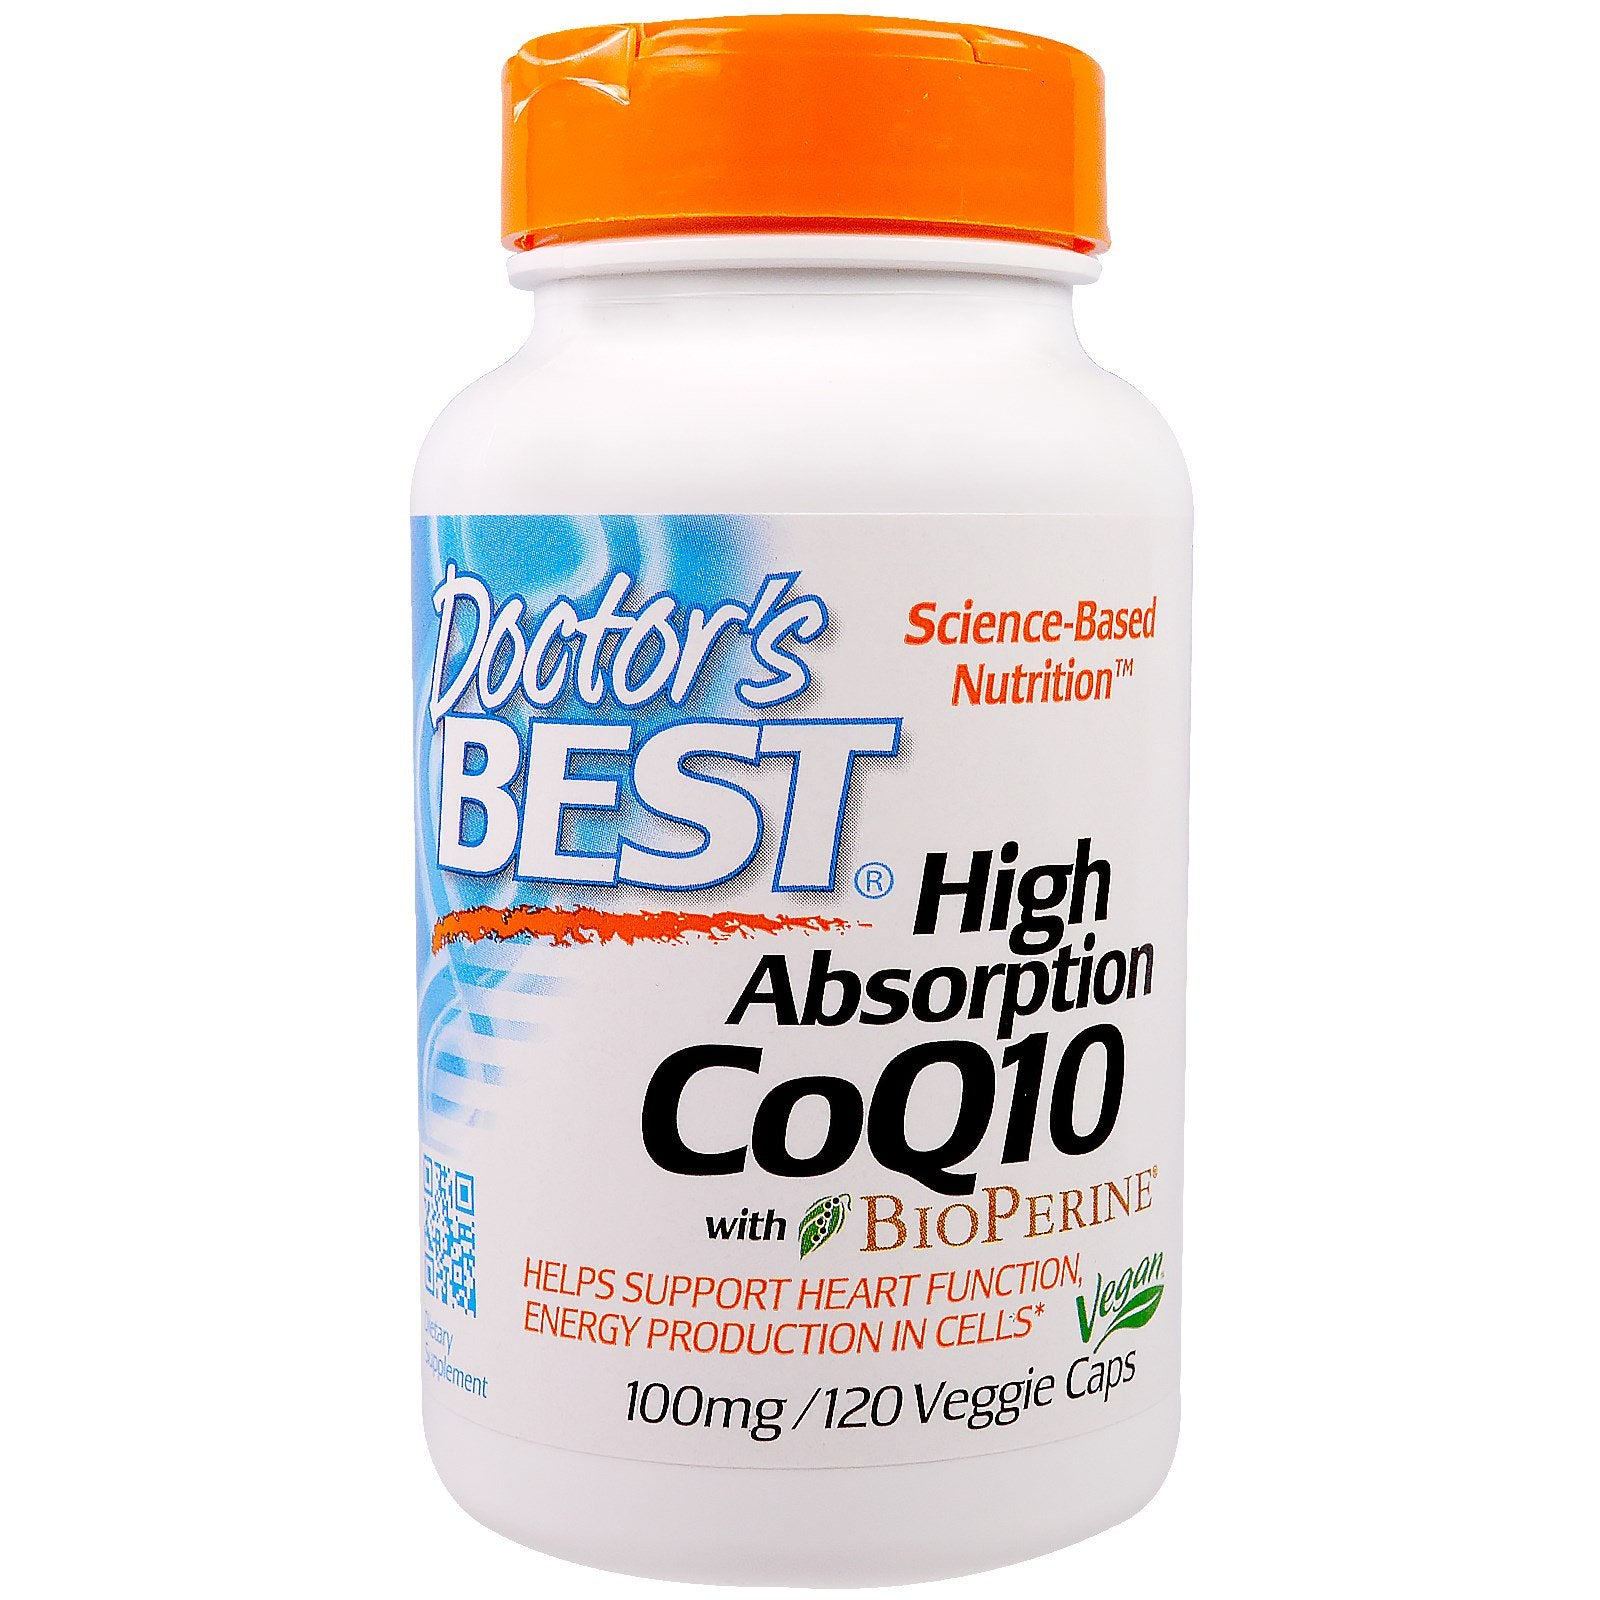 Doctor's Best High Absorption CoQ10 with BioPerine 100 mg, 120 vcaps